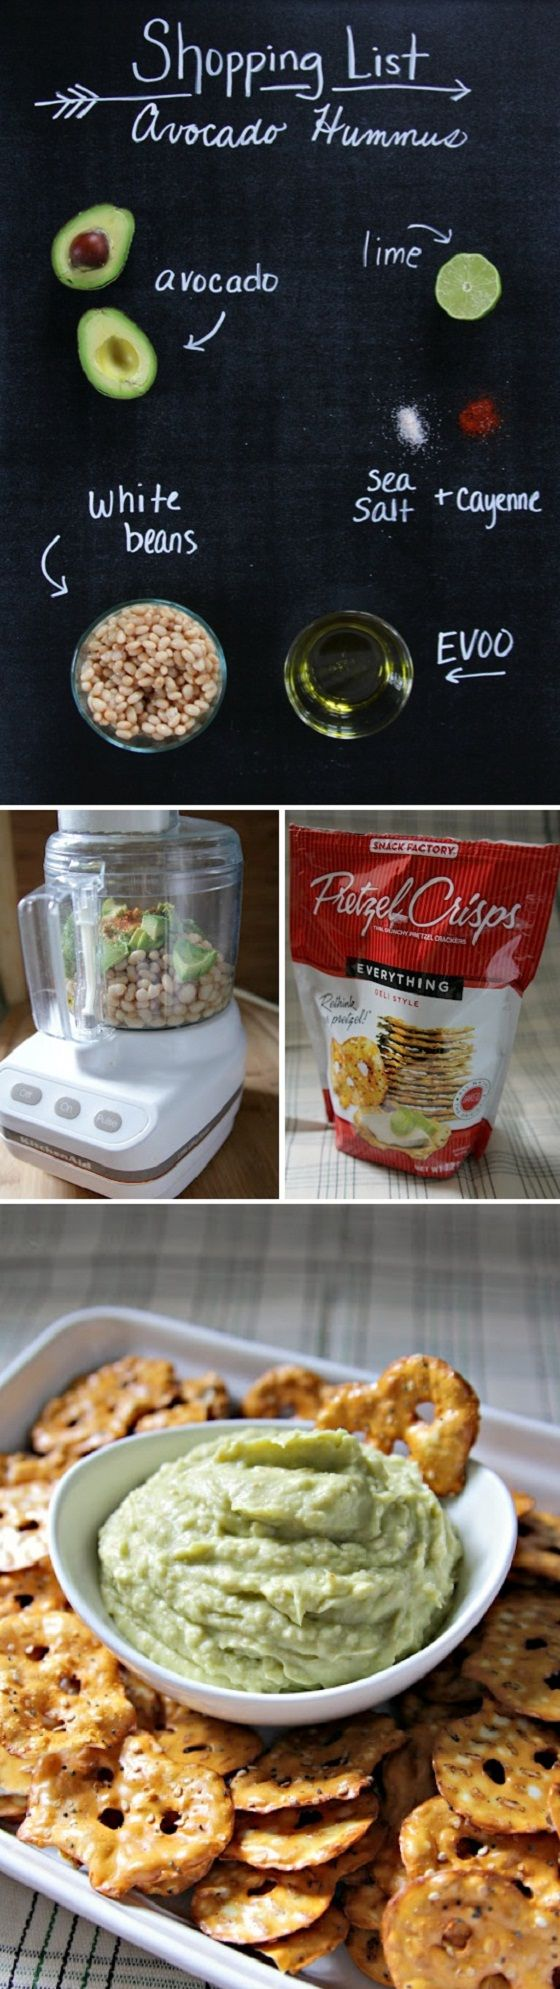 Avocado Hummus #healthy #appetizer